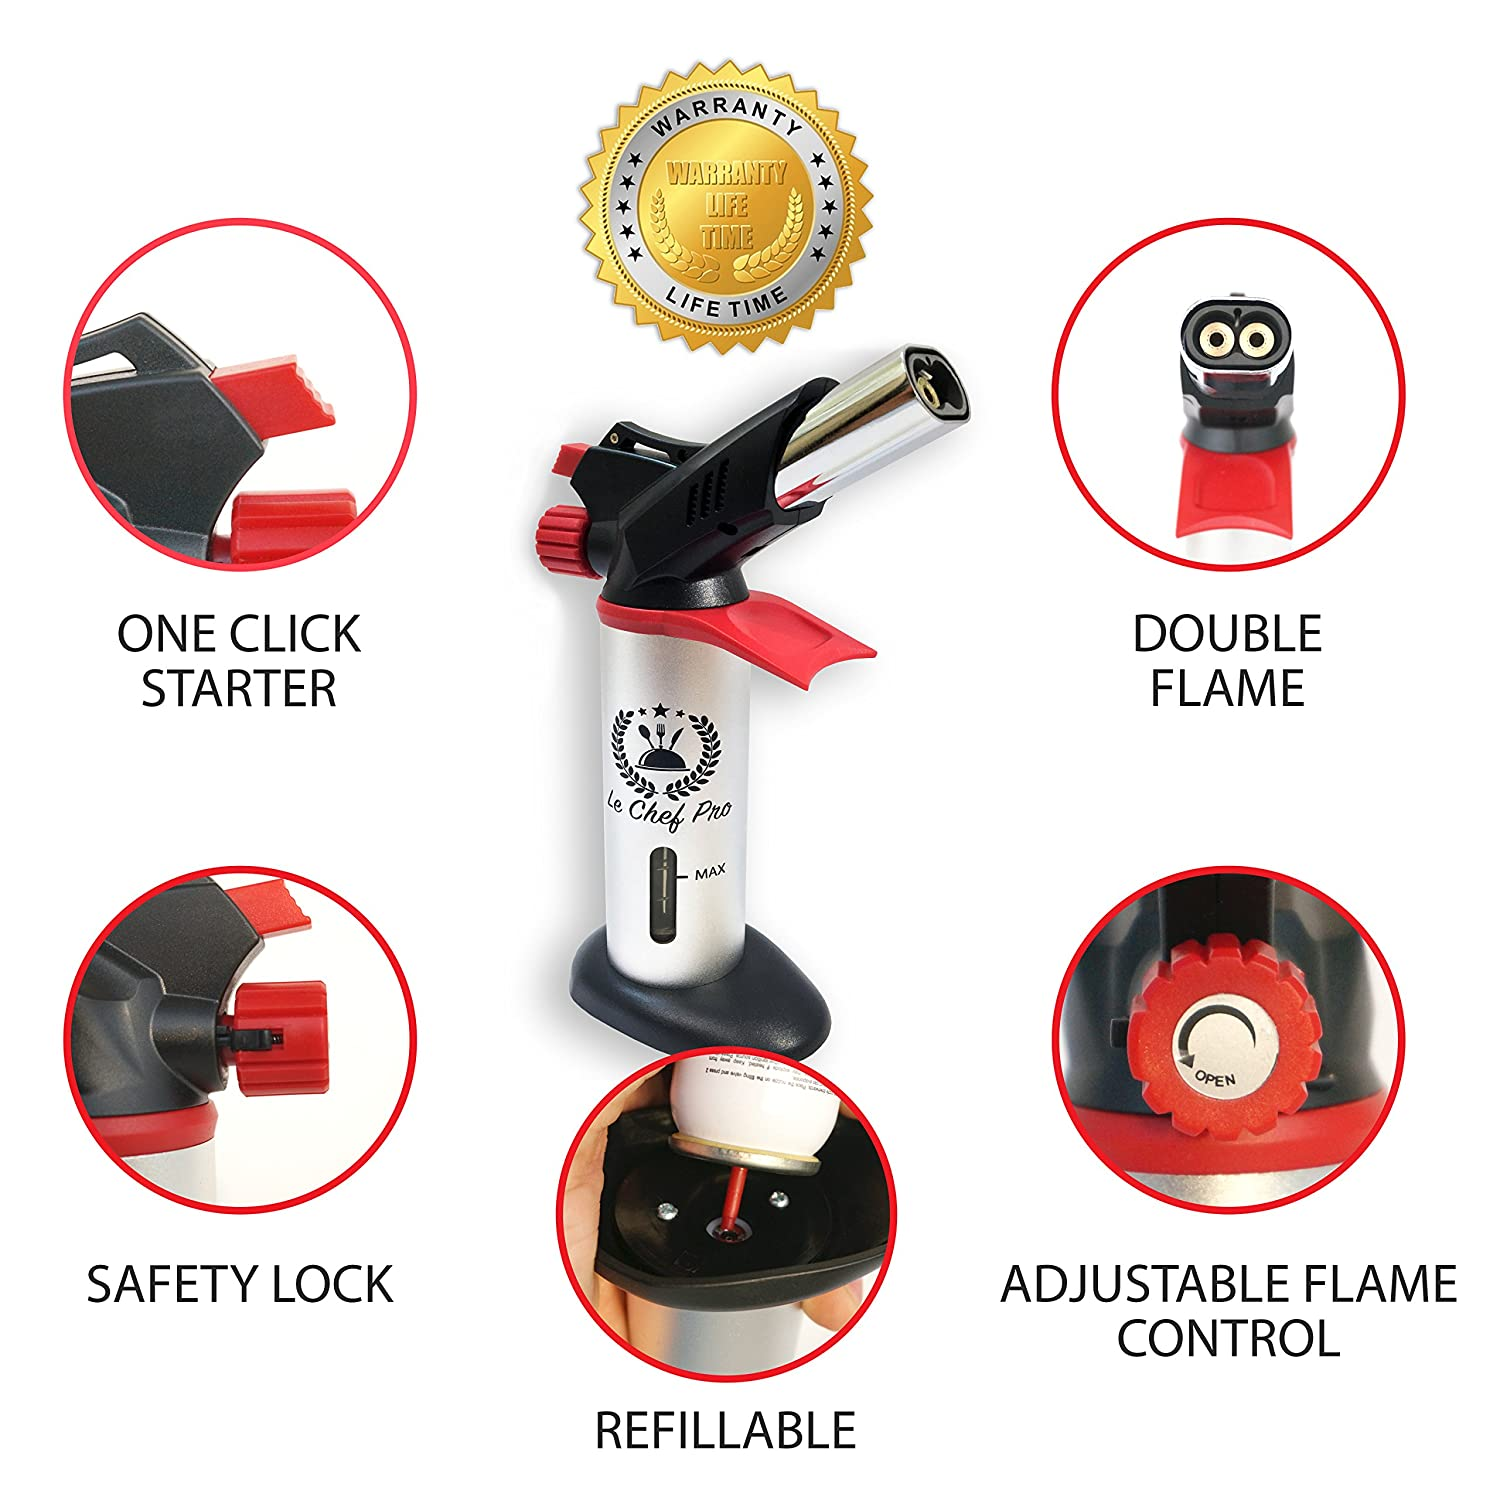 Amazon.com: DOUBLE FLAME Culinary Torch for Creme Brulee, Best ...